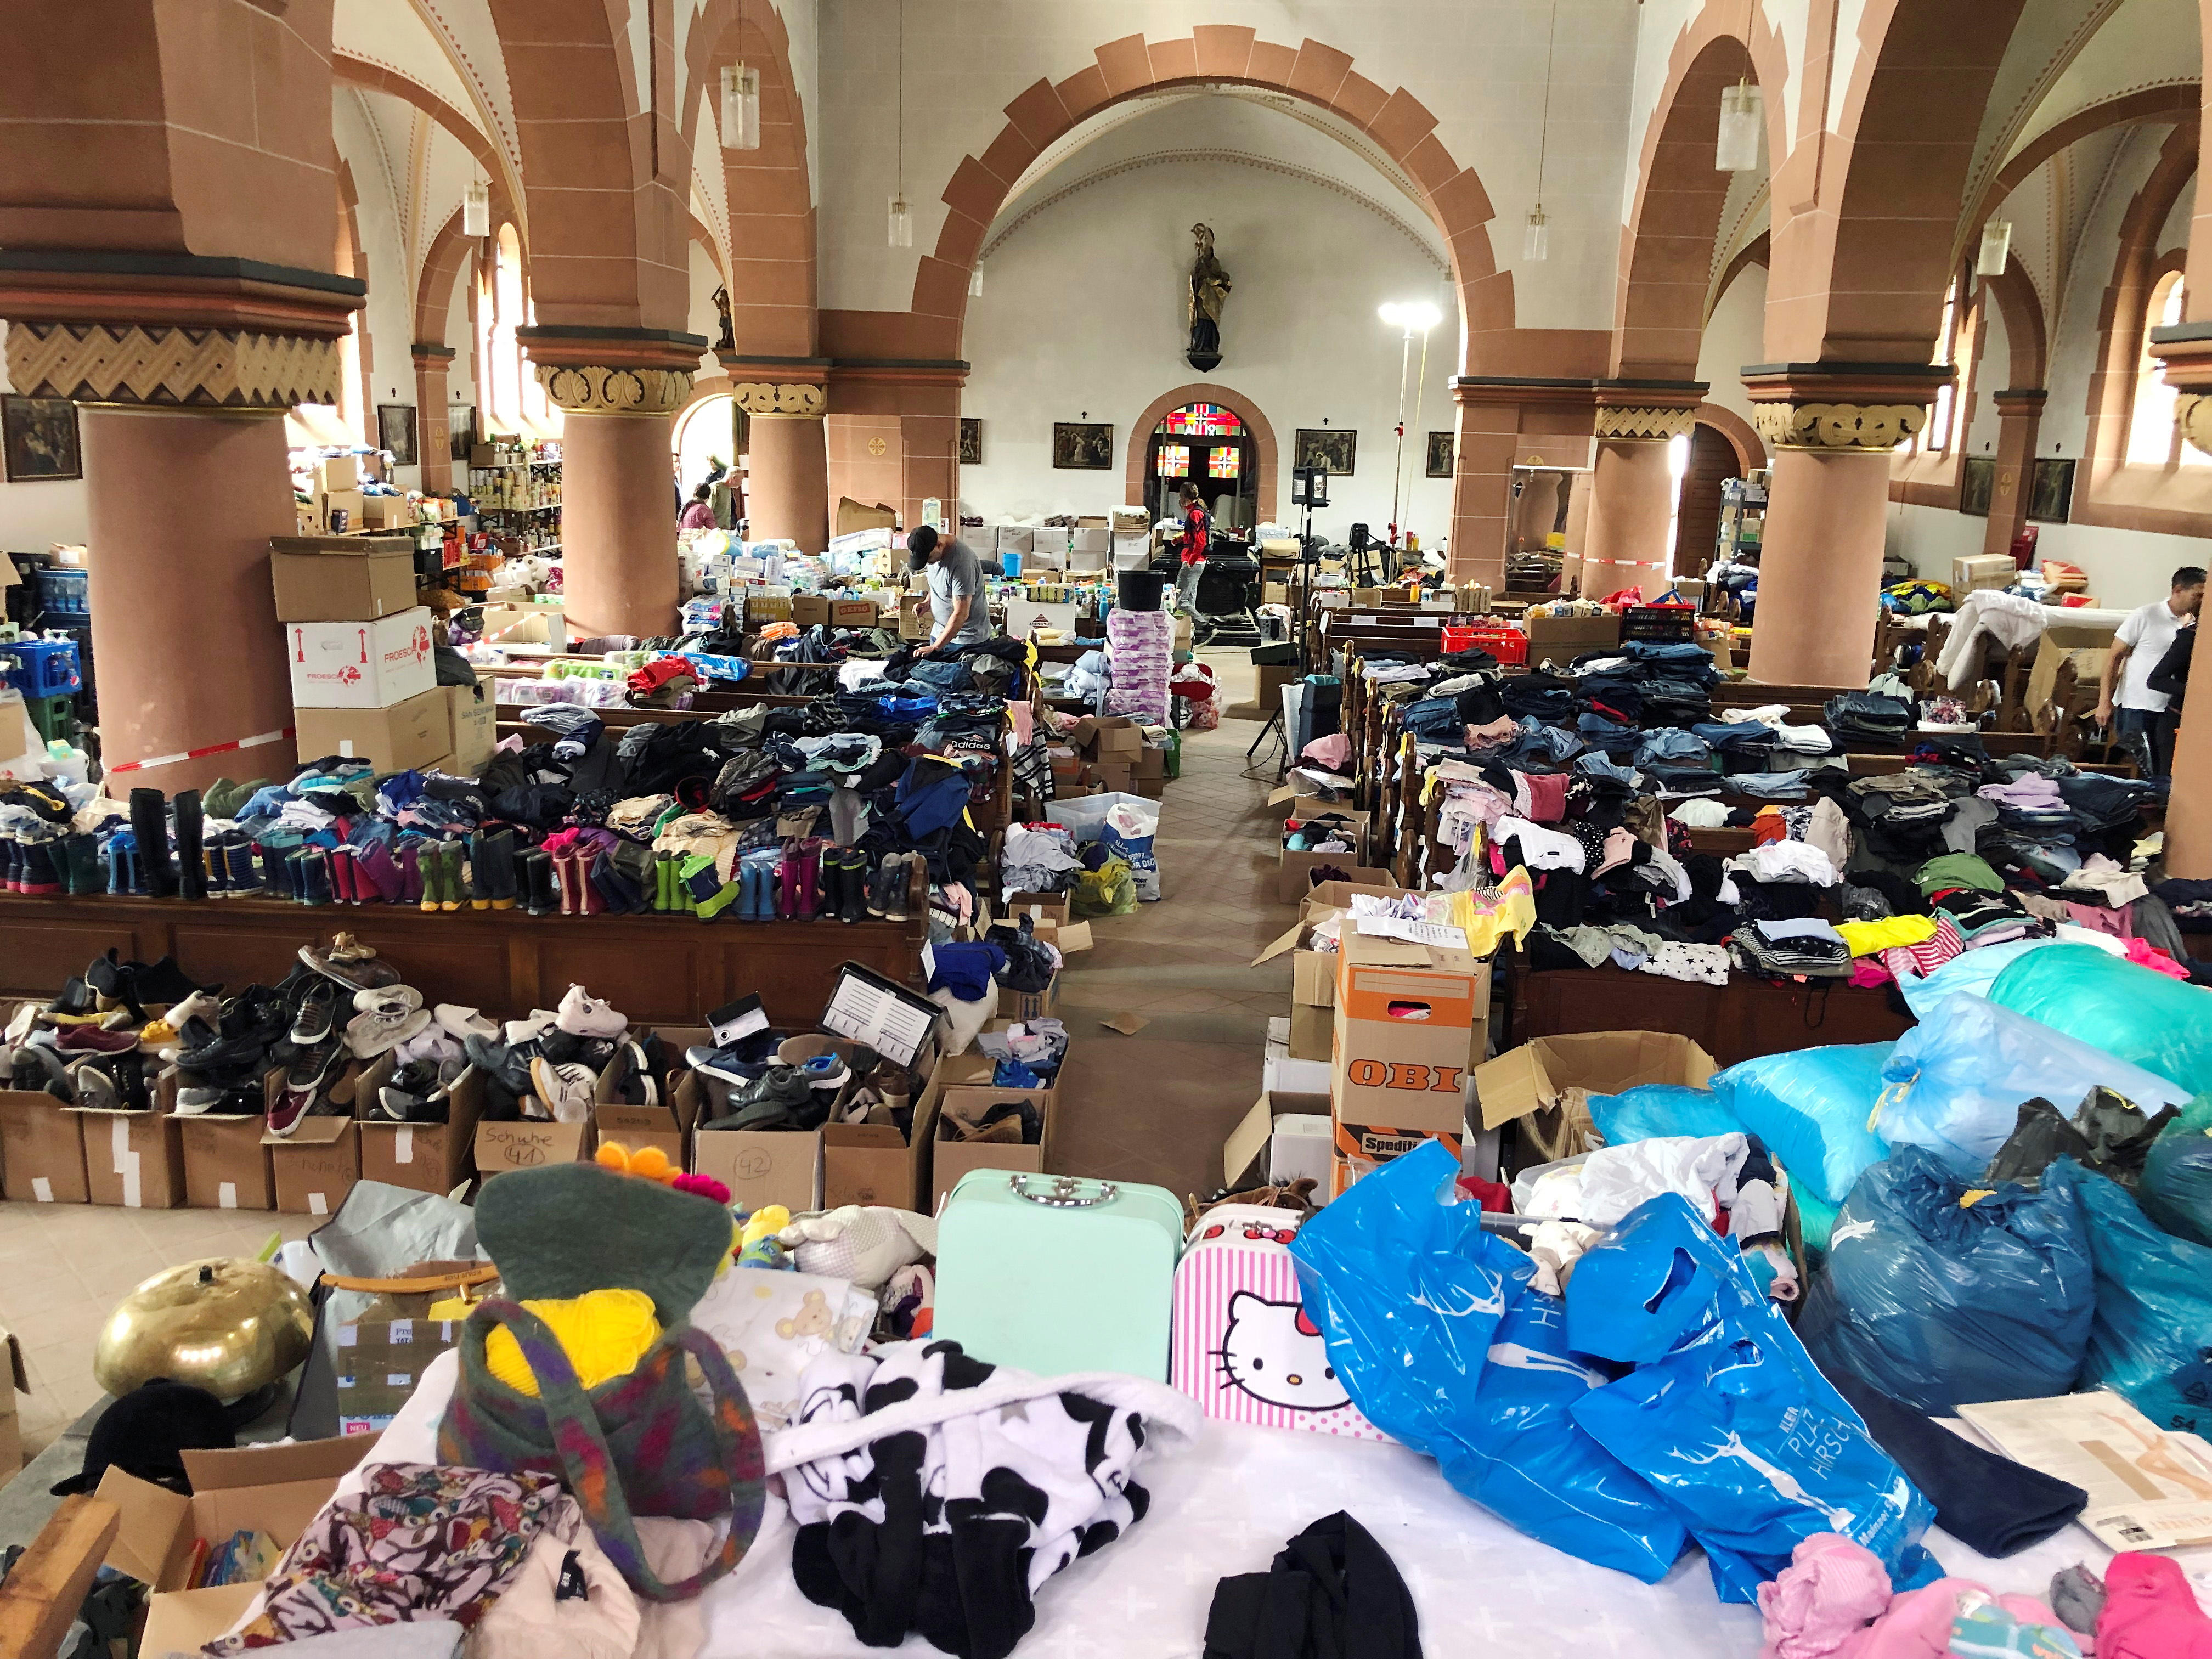 Donations for flood victims lie in the church of St. Nicholas and Rochus in Mayschoss, Germany, July 29, 2021. REUTERS/Andreas Kranz